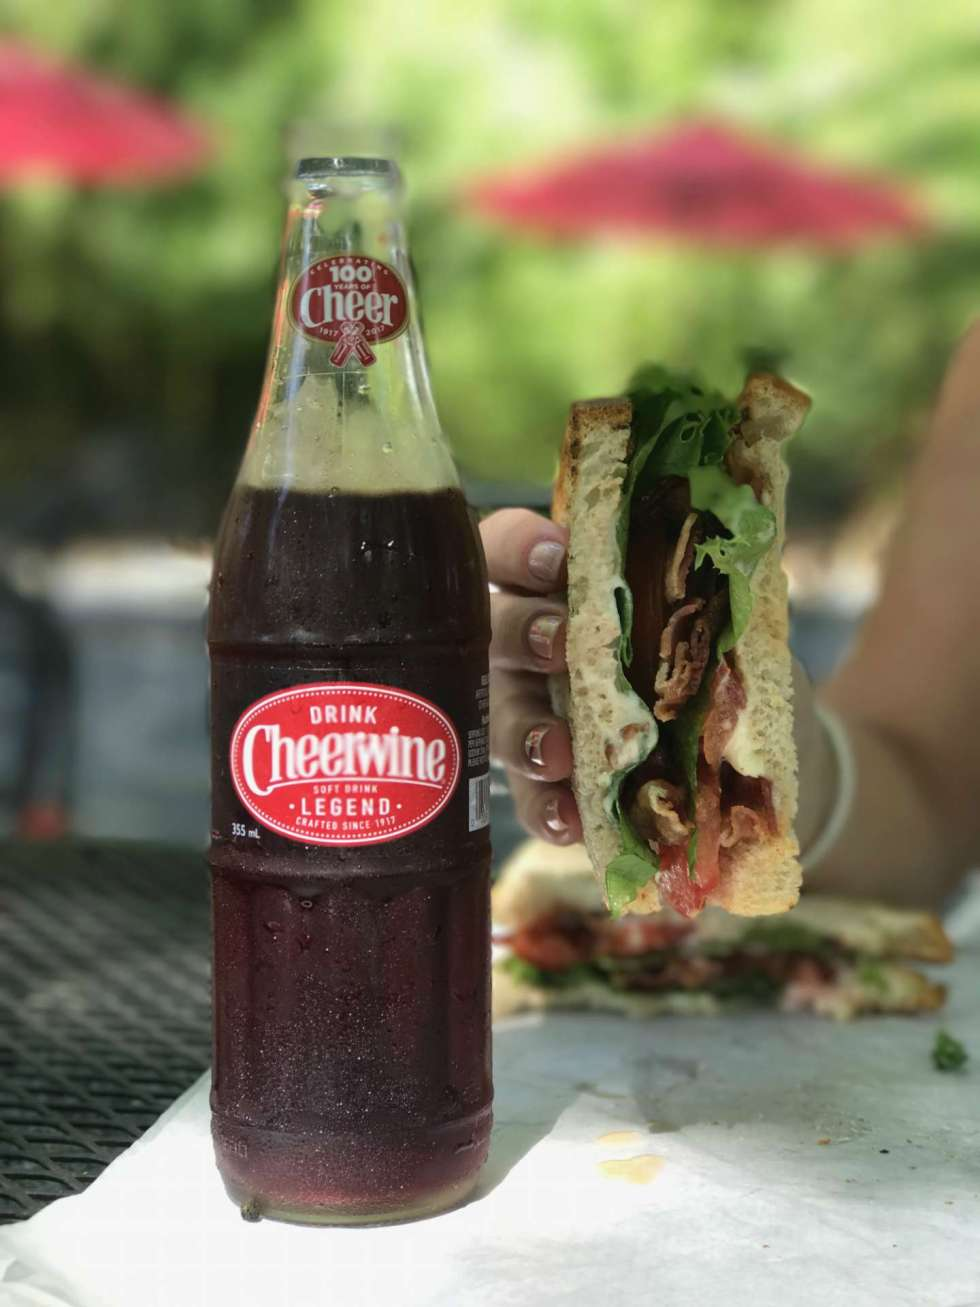 Top 15 North Carolina Food Staples to Try - I'm Fixin' To - @mbg0112